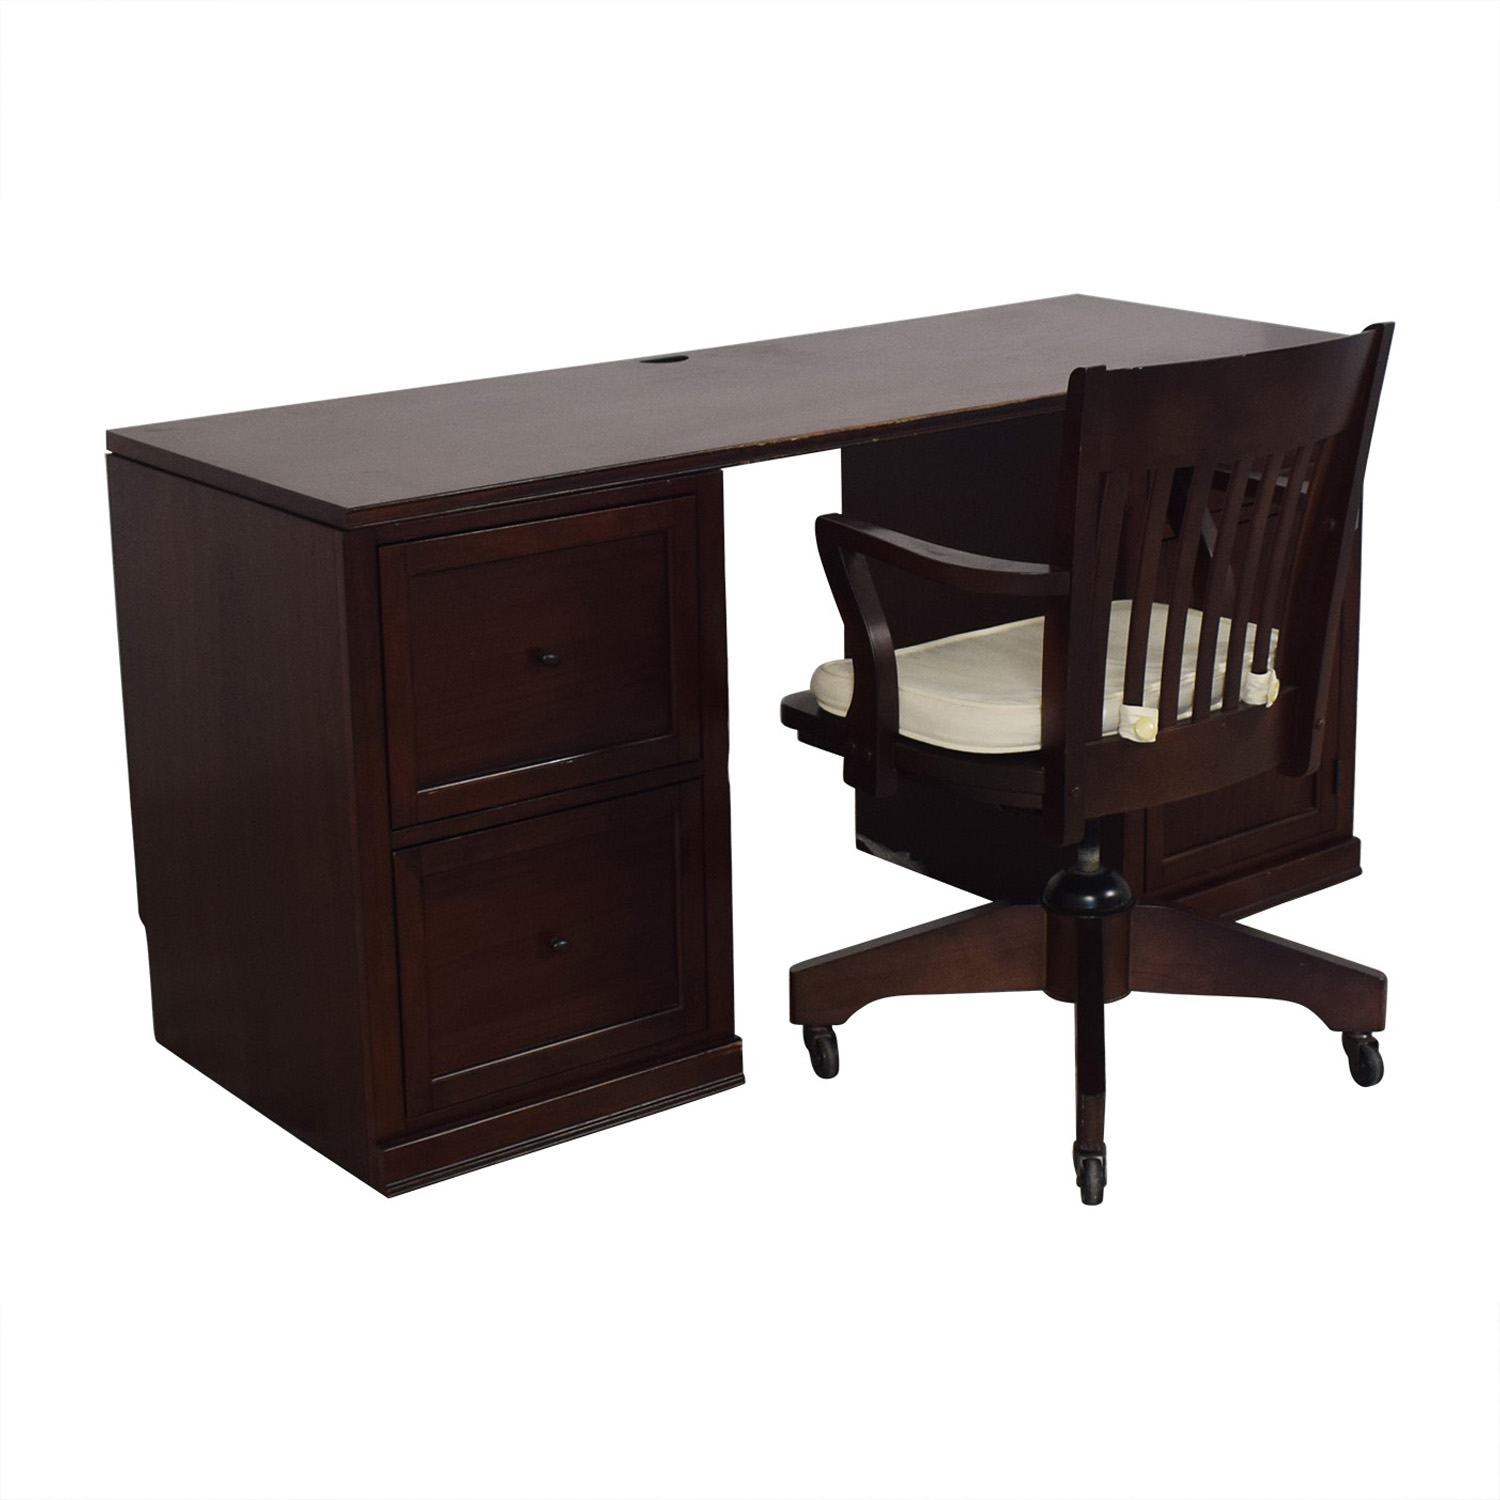 Pottery Barn Pottery Barn Four-Drawer Desk and Chair on Castors second hand